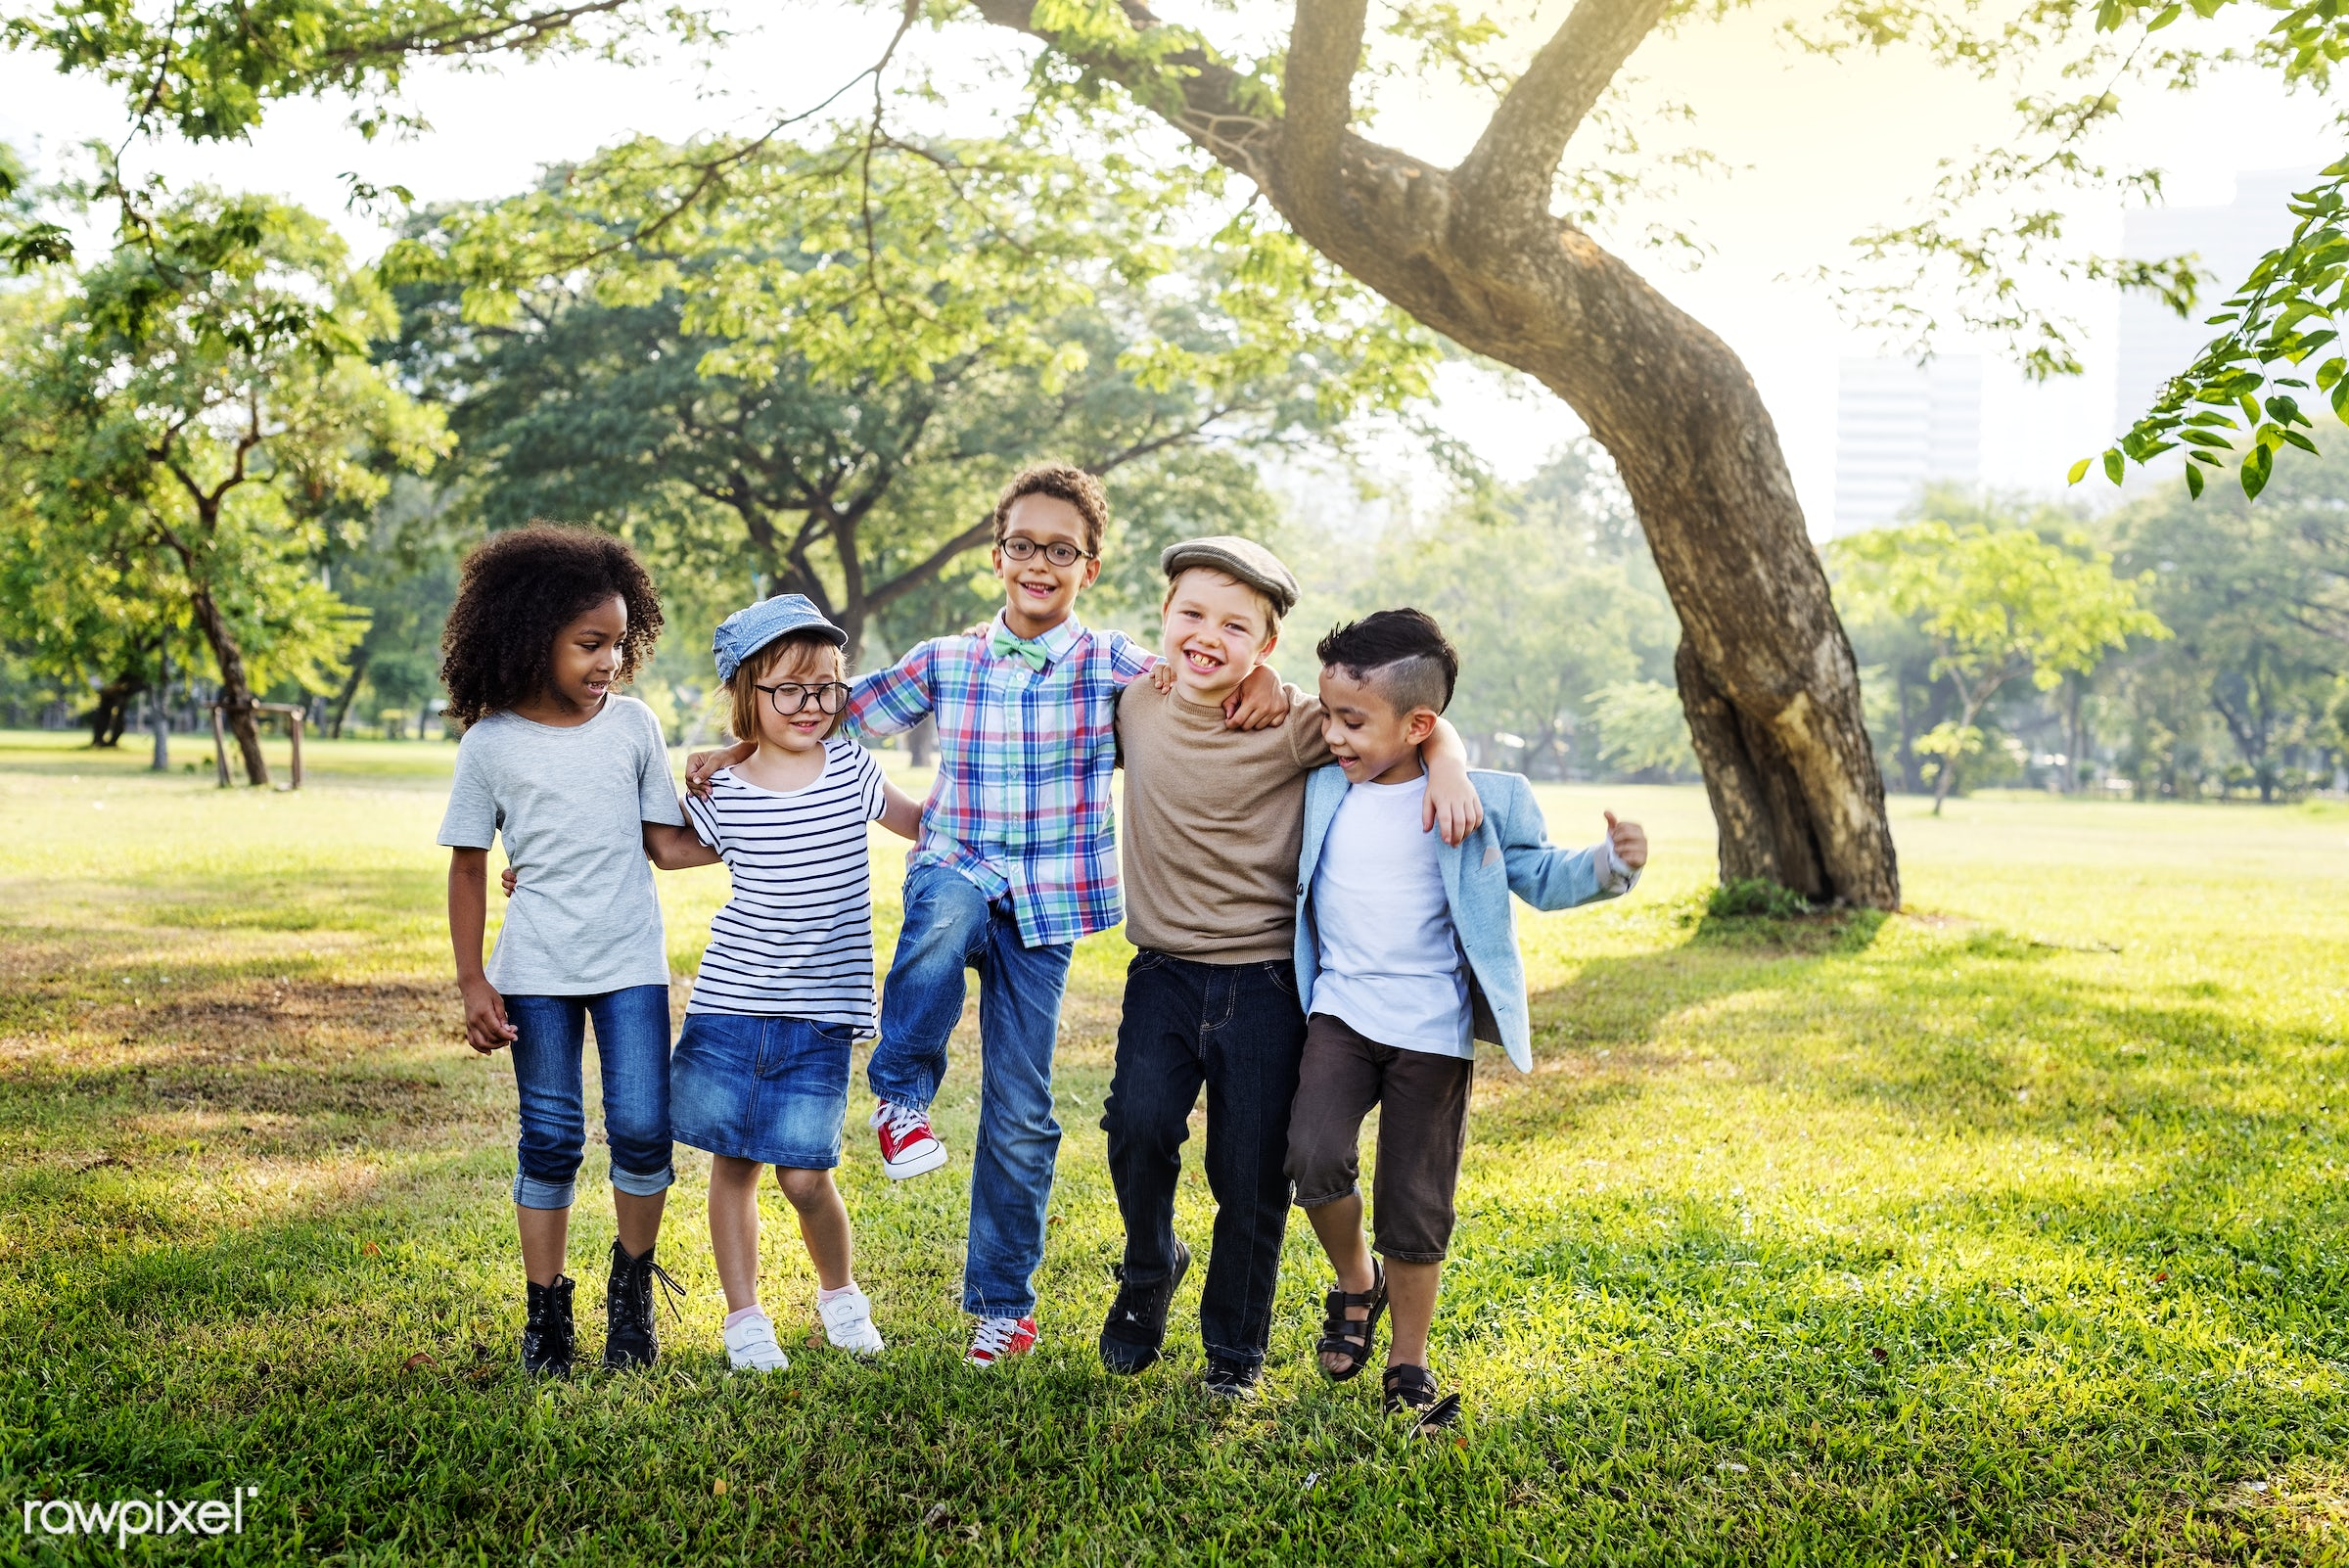 Happy kids in the park - child, play, casual, fashion, action, active, activity, adorable, african descent, asian ethnicity...